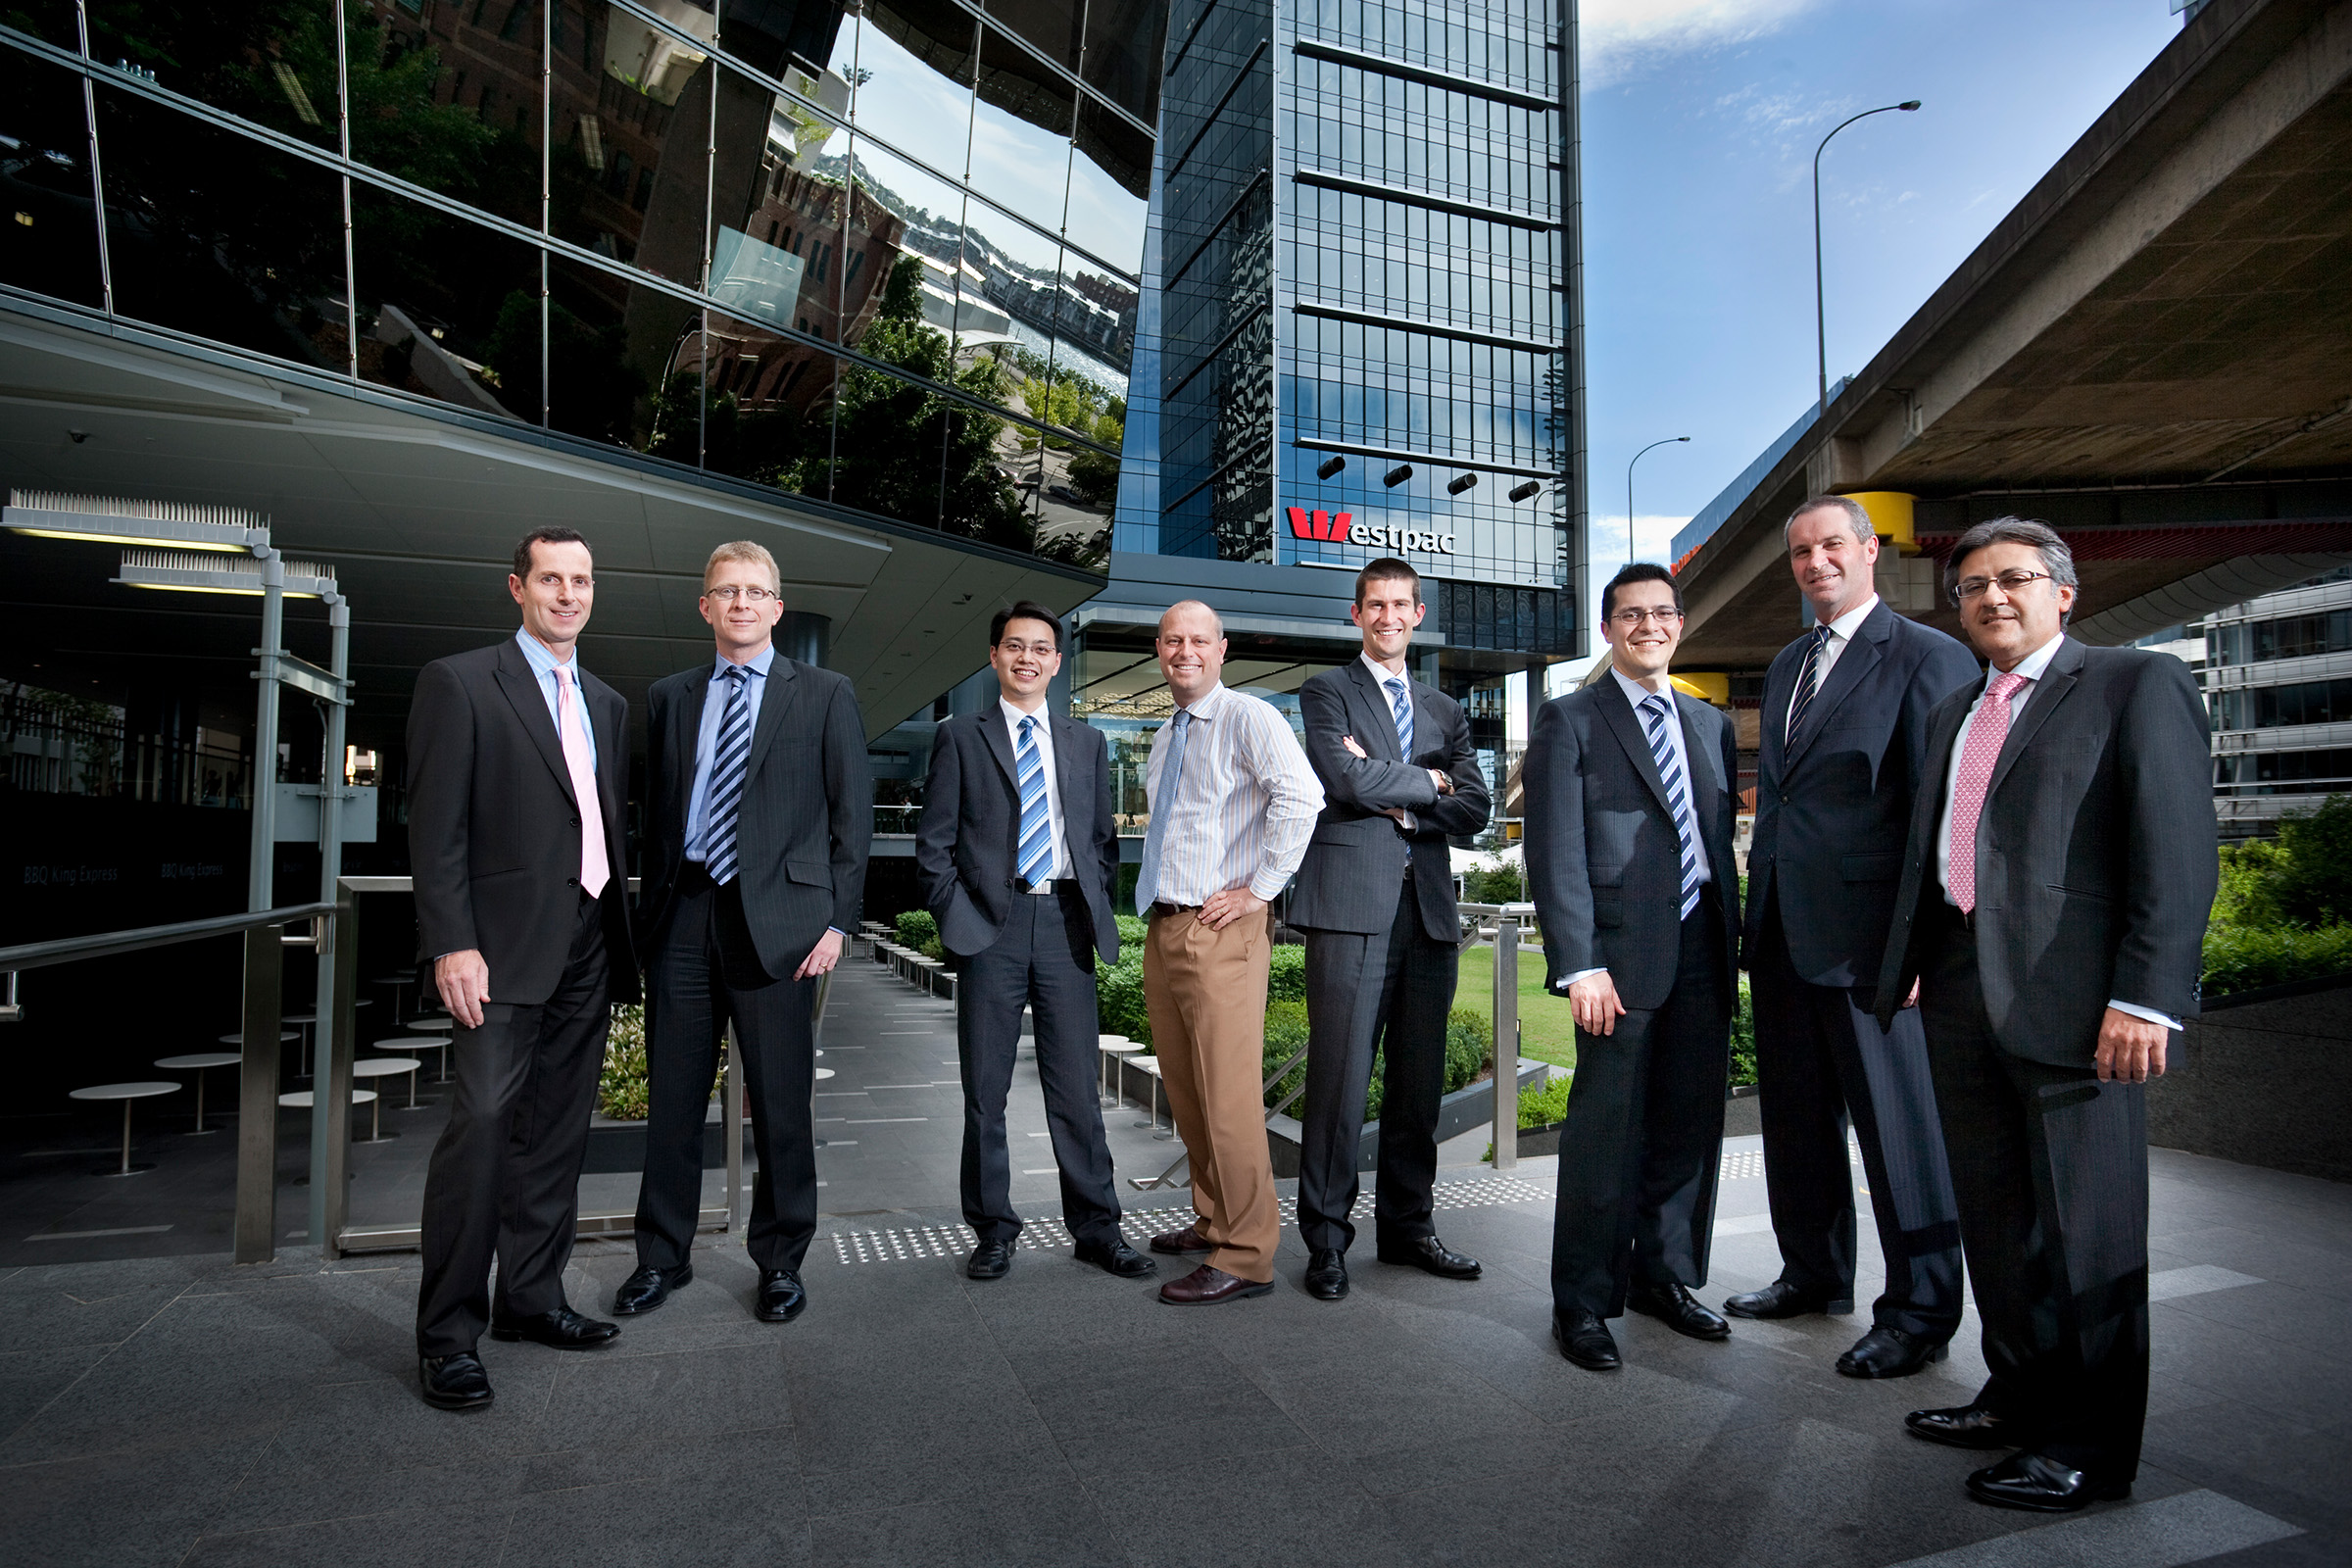 Corporate outdoor group photography 8 men standing in a row with Westpac building in background